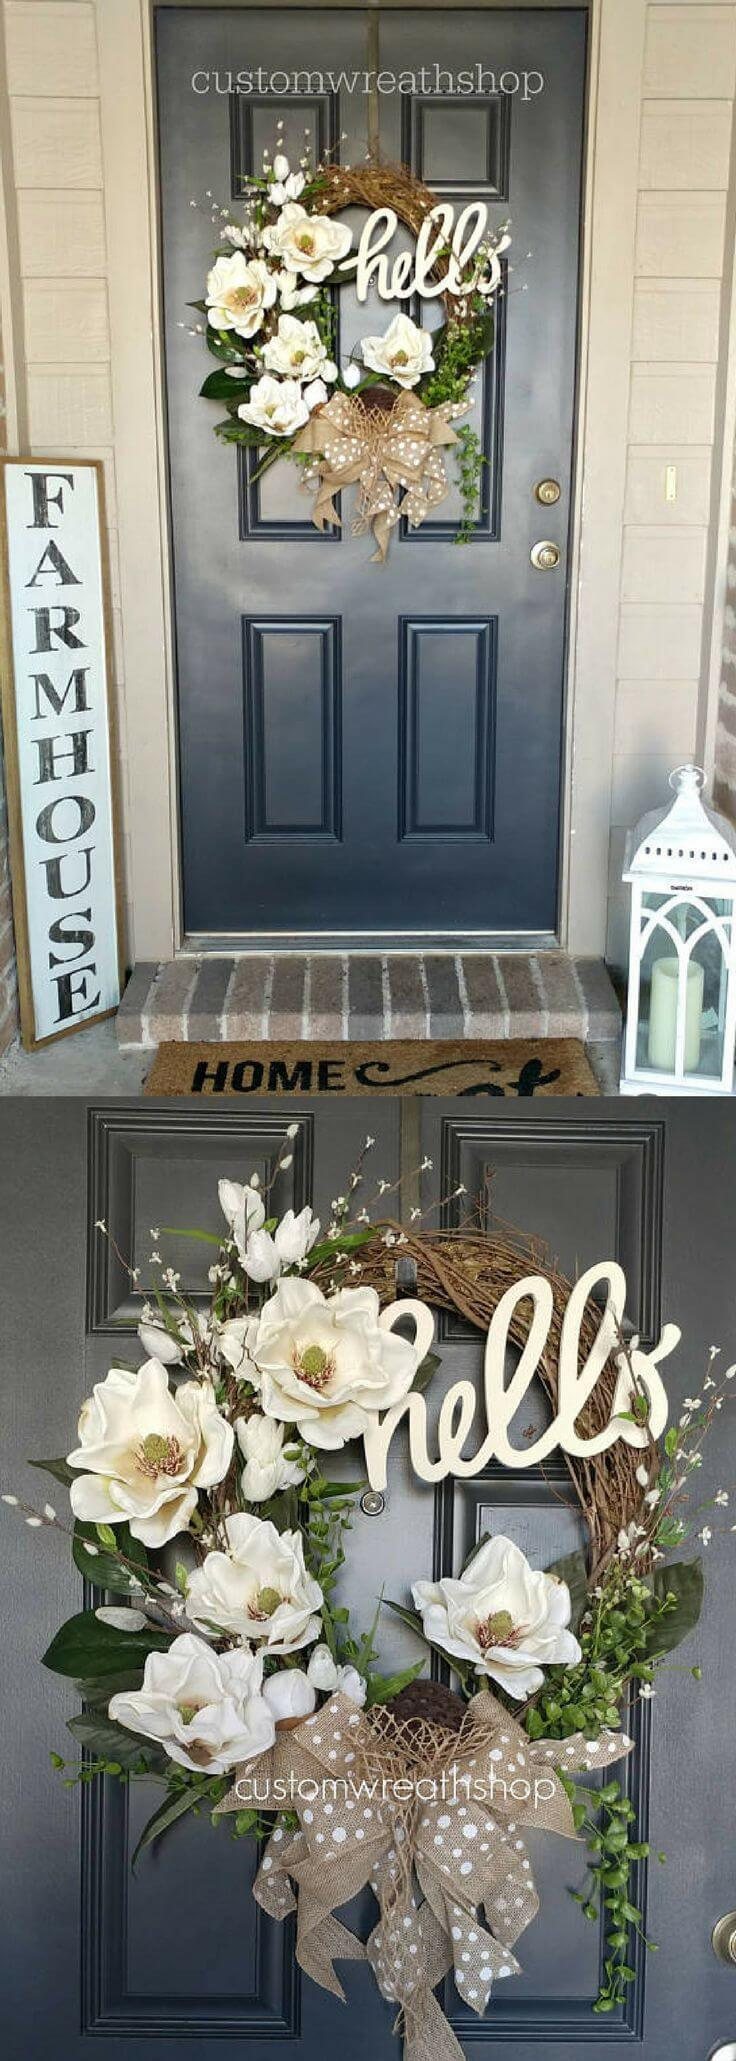 Beige and White Wreath with a Hello Sign